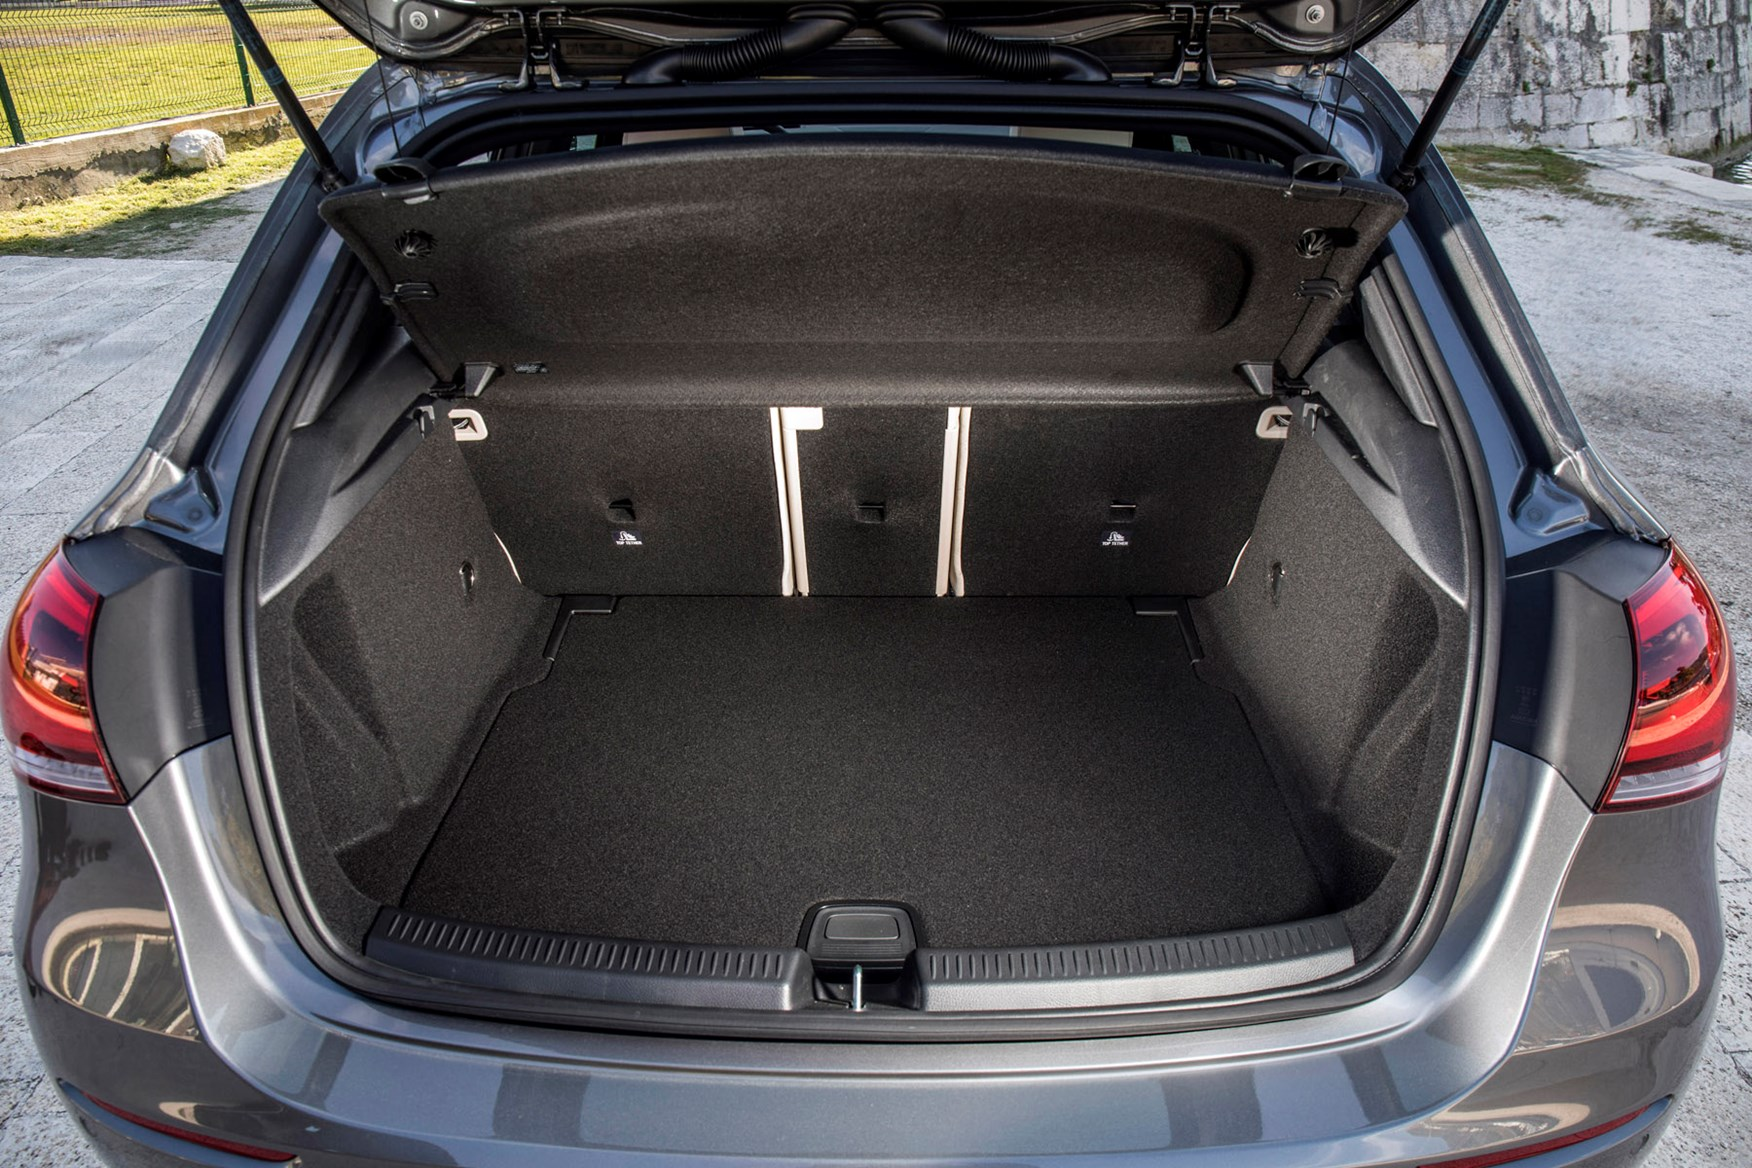 mercedes a class review features safety and practicality. Black Bedroom Furniture Sets. Home Design Ideas